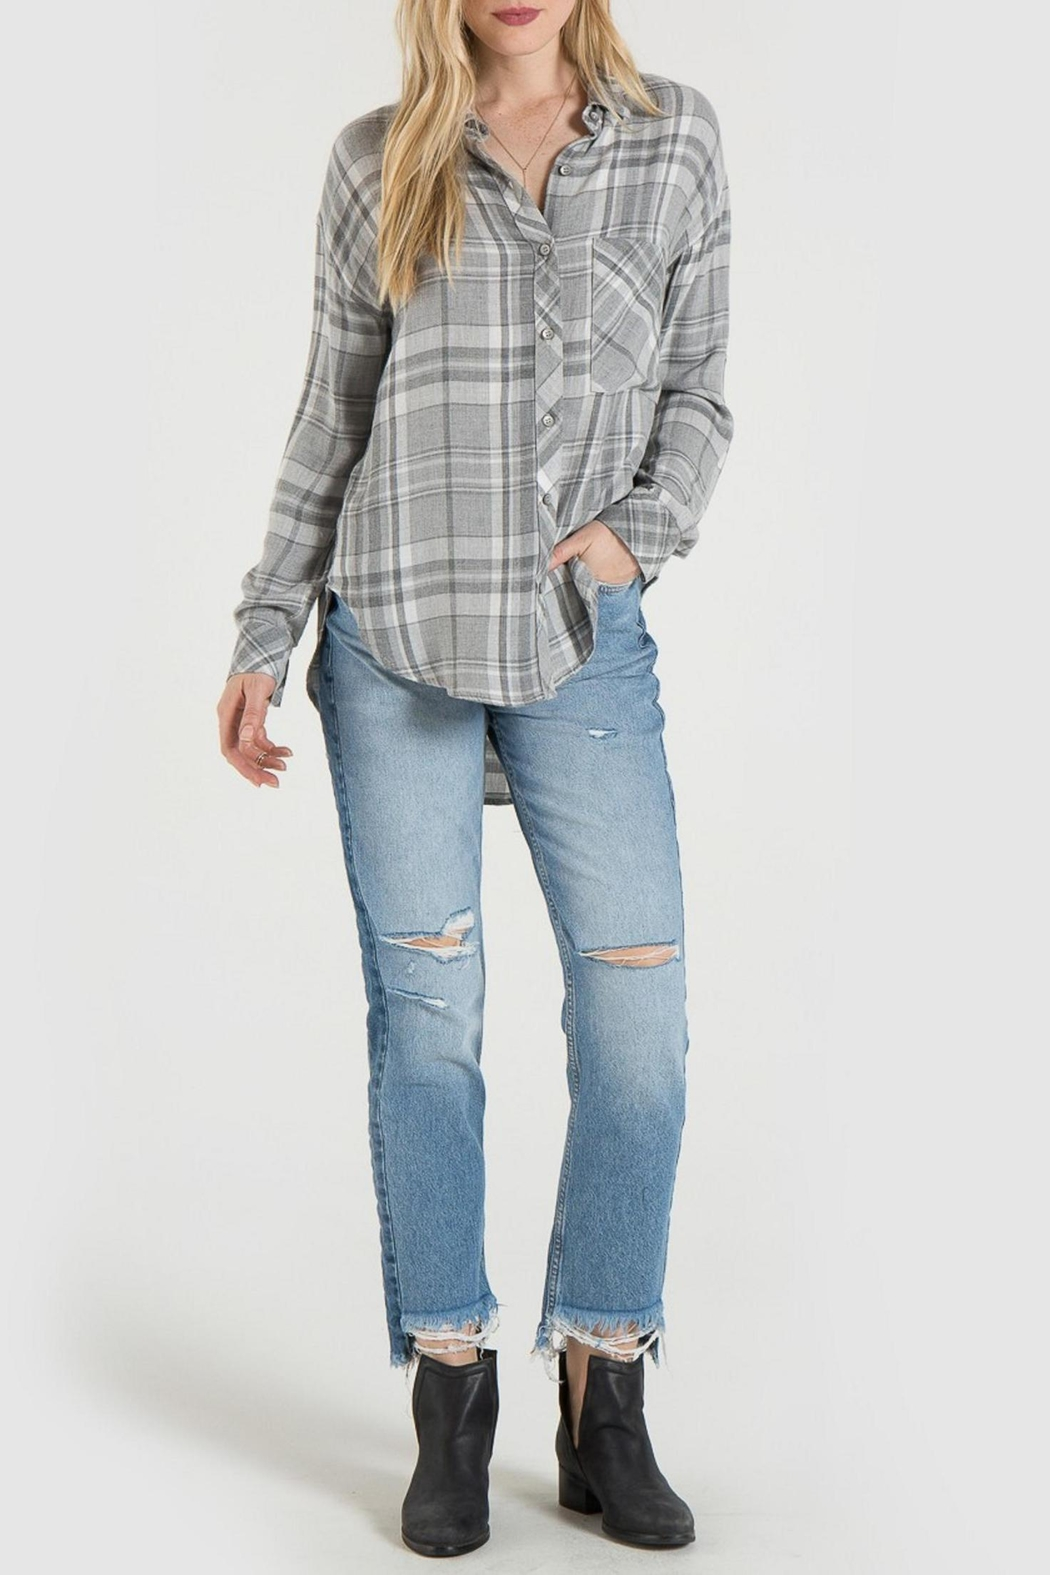 Bella Dahl Grey Plaid Shirt - Main Image